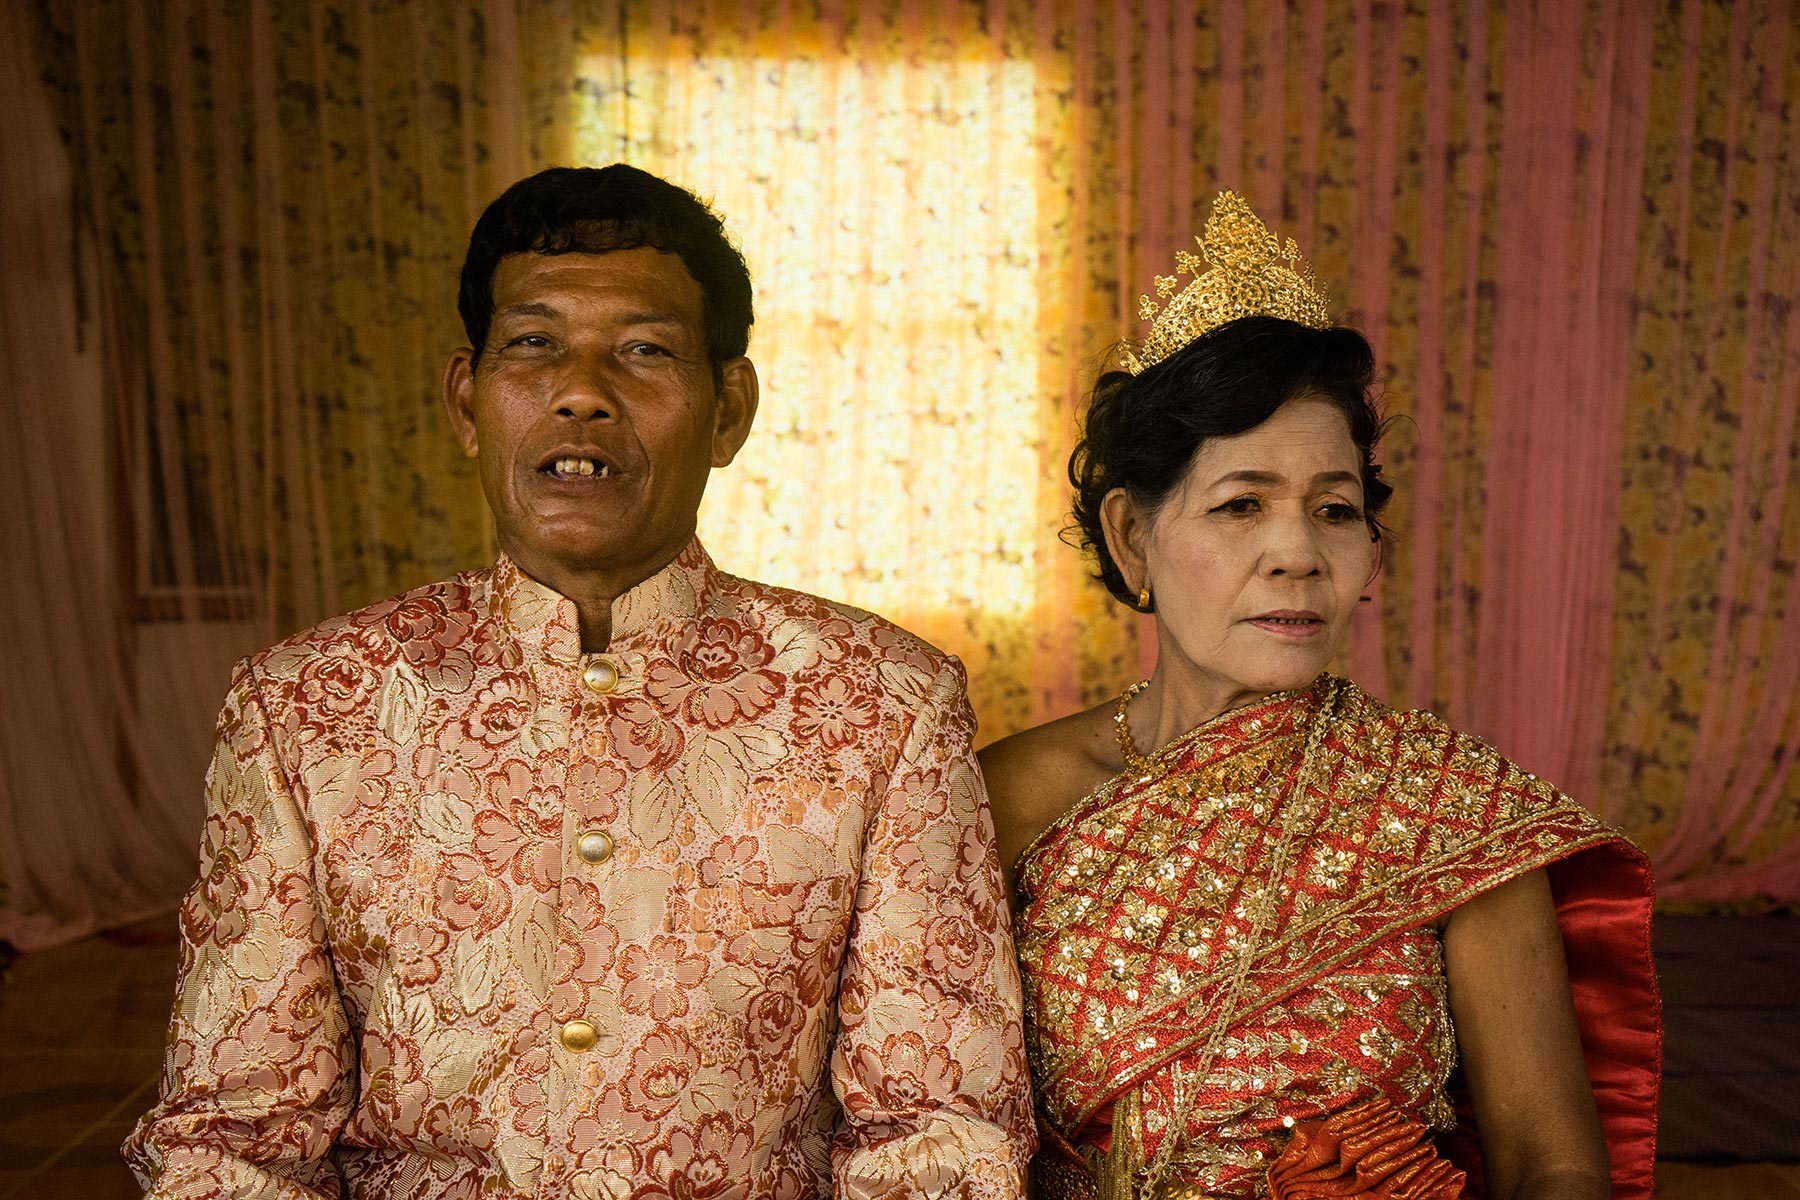 Morb Heang and Nou Sout pose on the day they renewed their vows. (Credit: Hannah Reyes)